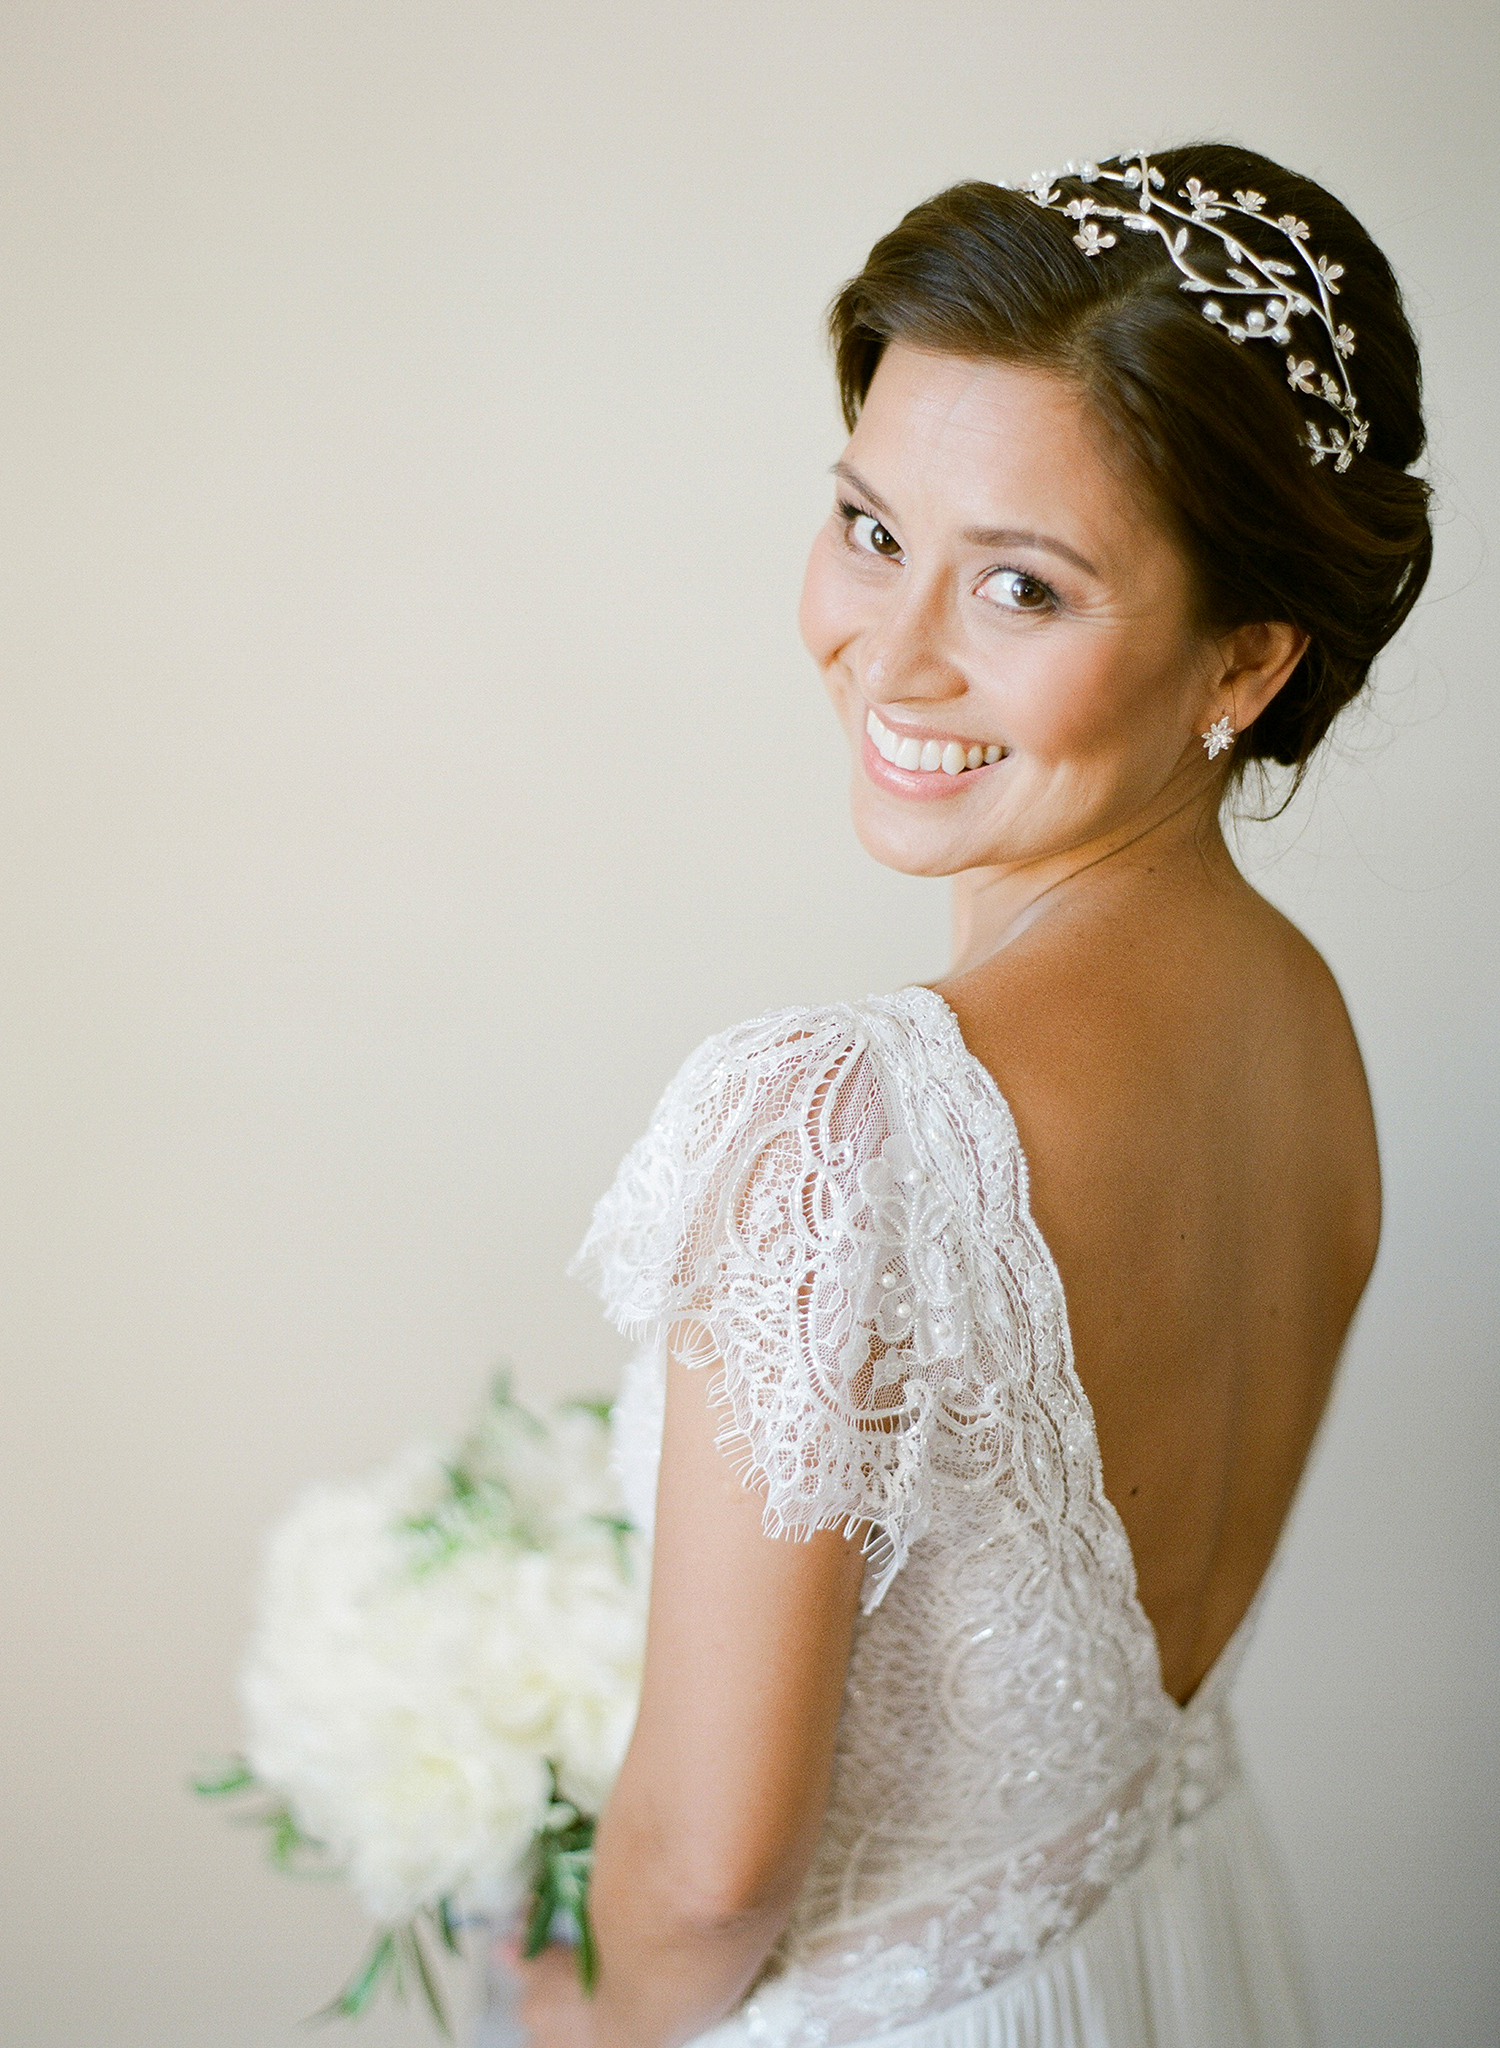 jannicke paal france wedding gown back detail